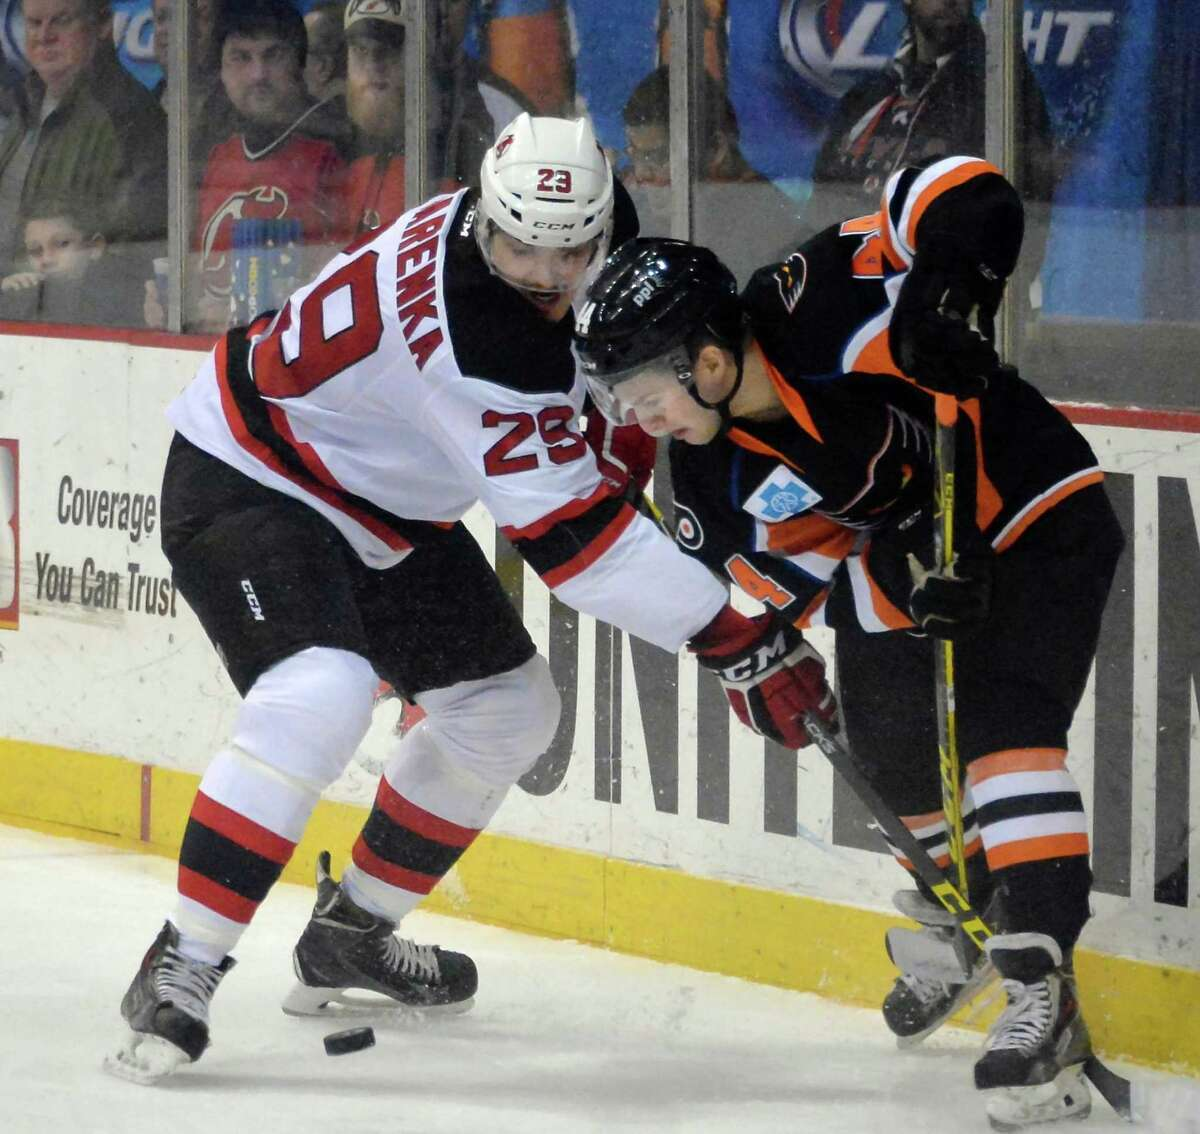 Albany Devils' #29 Raman Hrabarenka, left, and Lehigh Valley Phantoms' # 44 Joe Rehkamp vie for the puck during Saturday's game at the Times Union Center Jan. 9, 2016 in Albany, NY. (John Carl D'Annibale / Times Union)